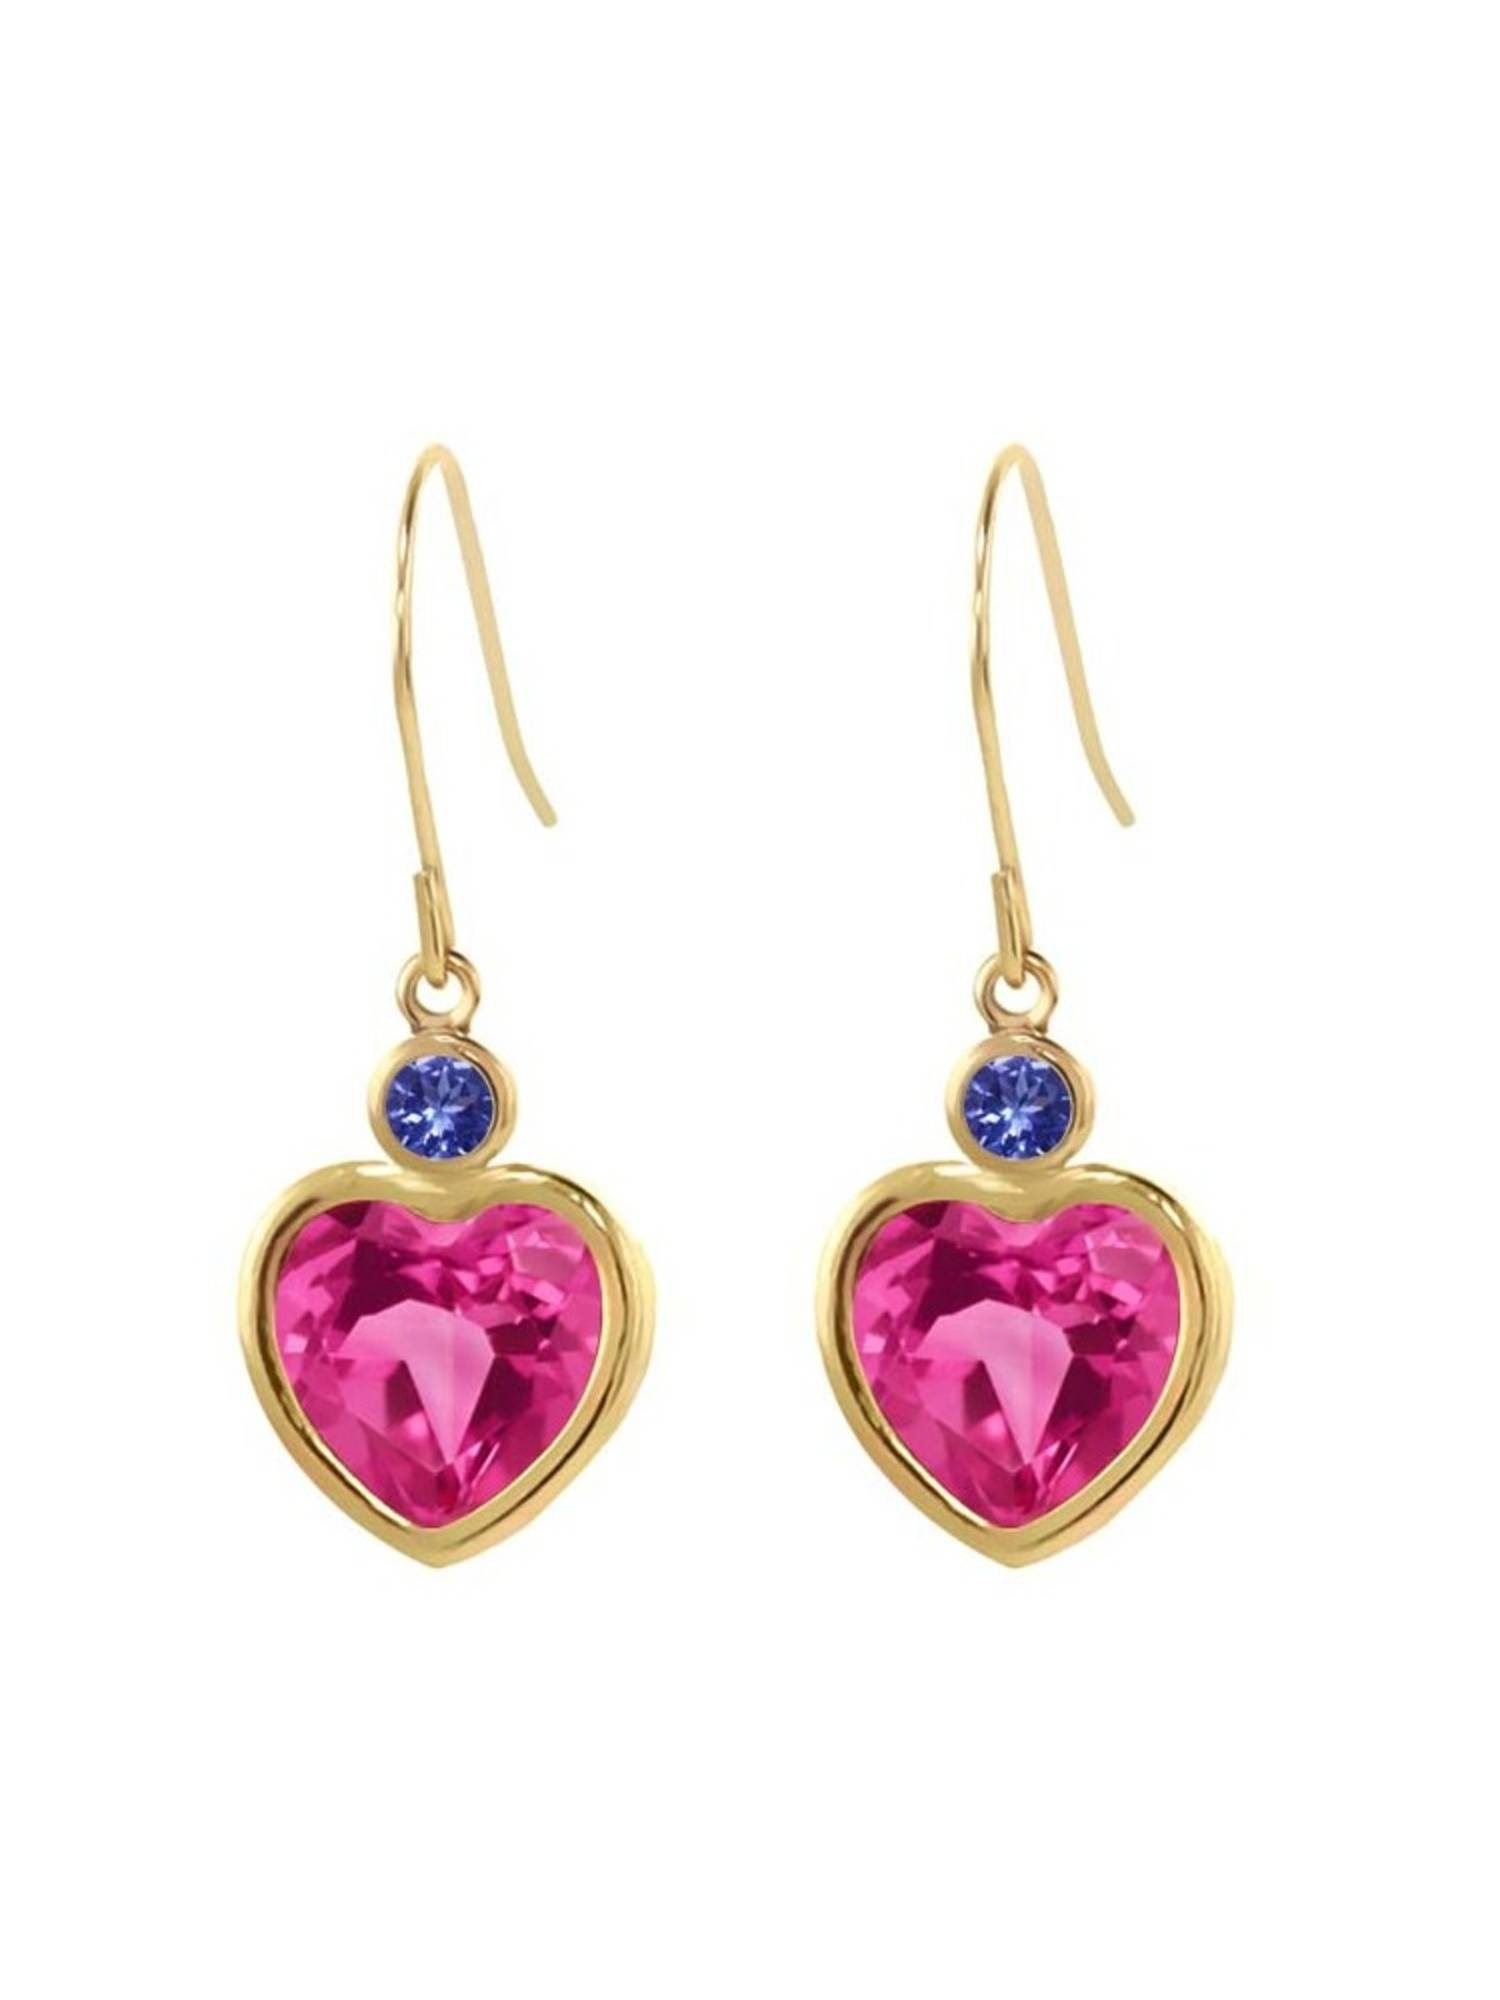 5.10 Ct Pink Created Sapphire Blue Tanzanite 14K Yellow Gold Earrings by